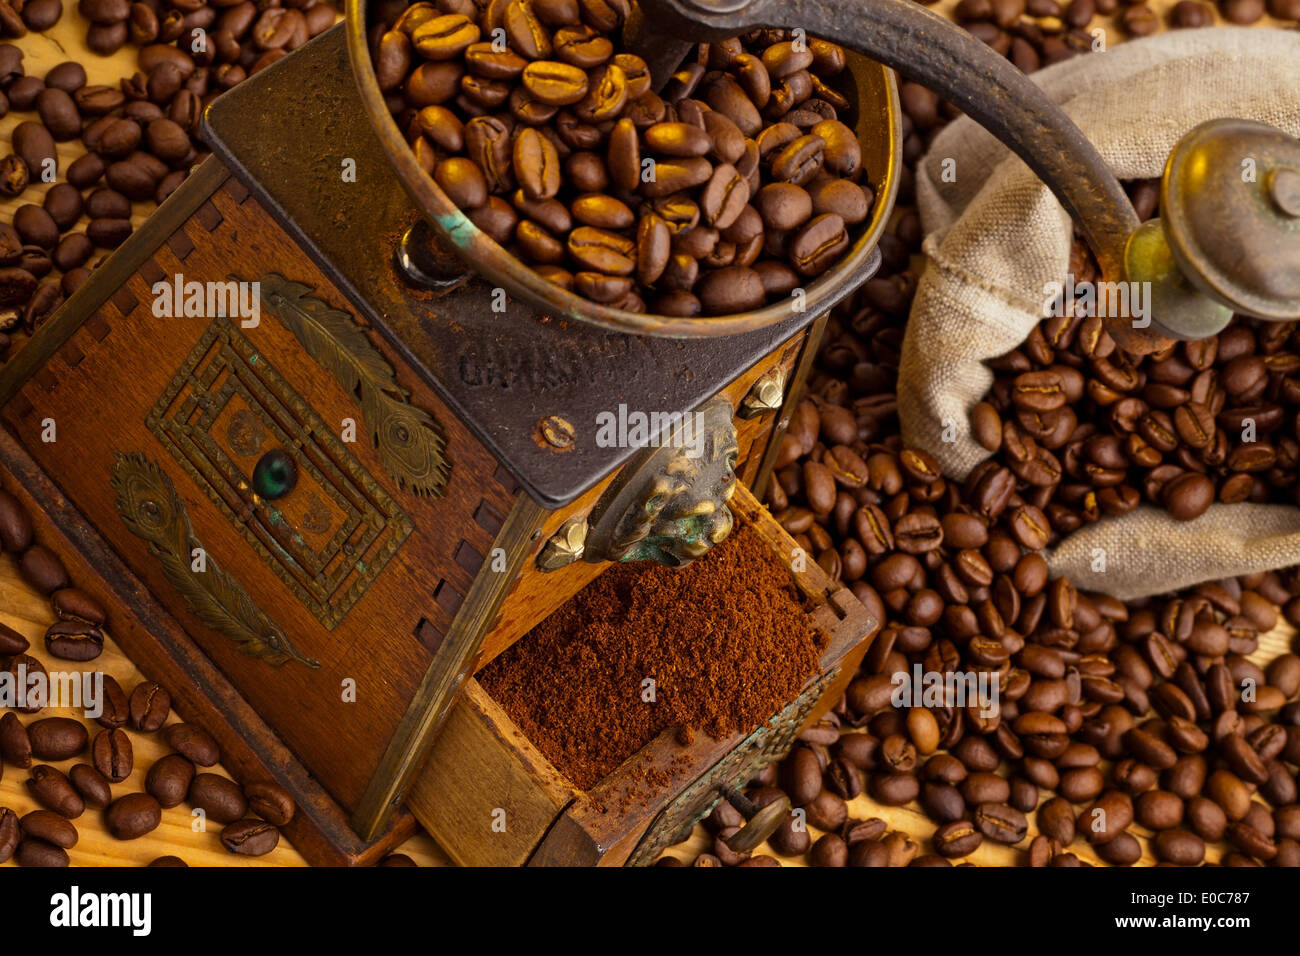 ground coffee stock photo - photo #10